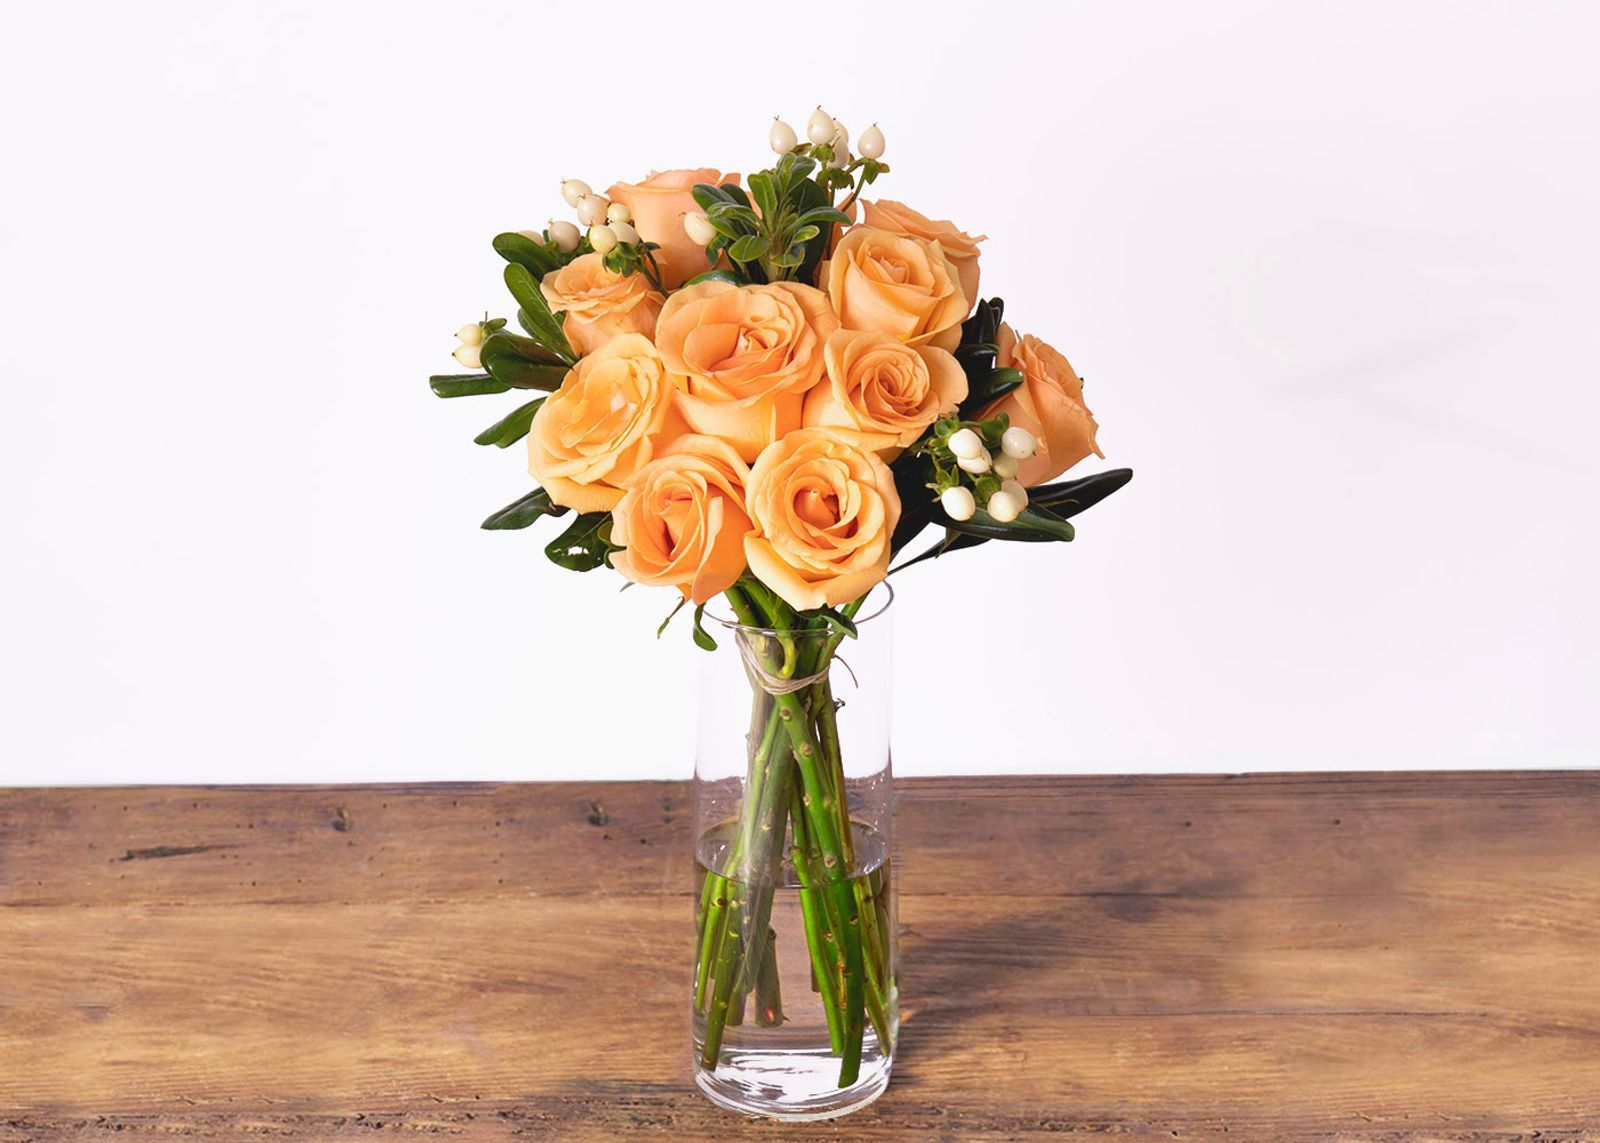 10 Best Mother's Day Flower Delivery Services - Where to Buy Flowers on Mother's Day